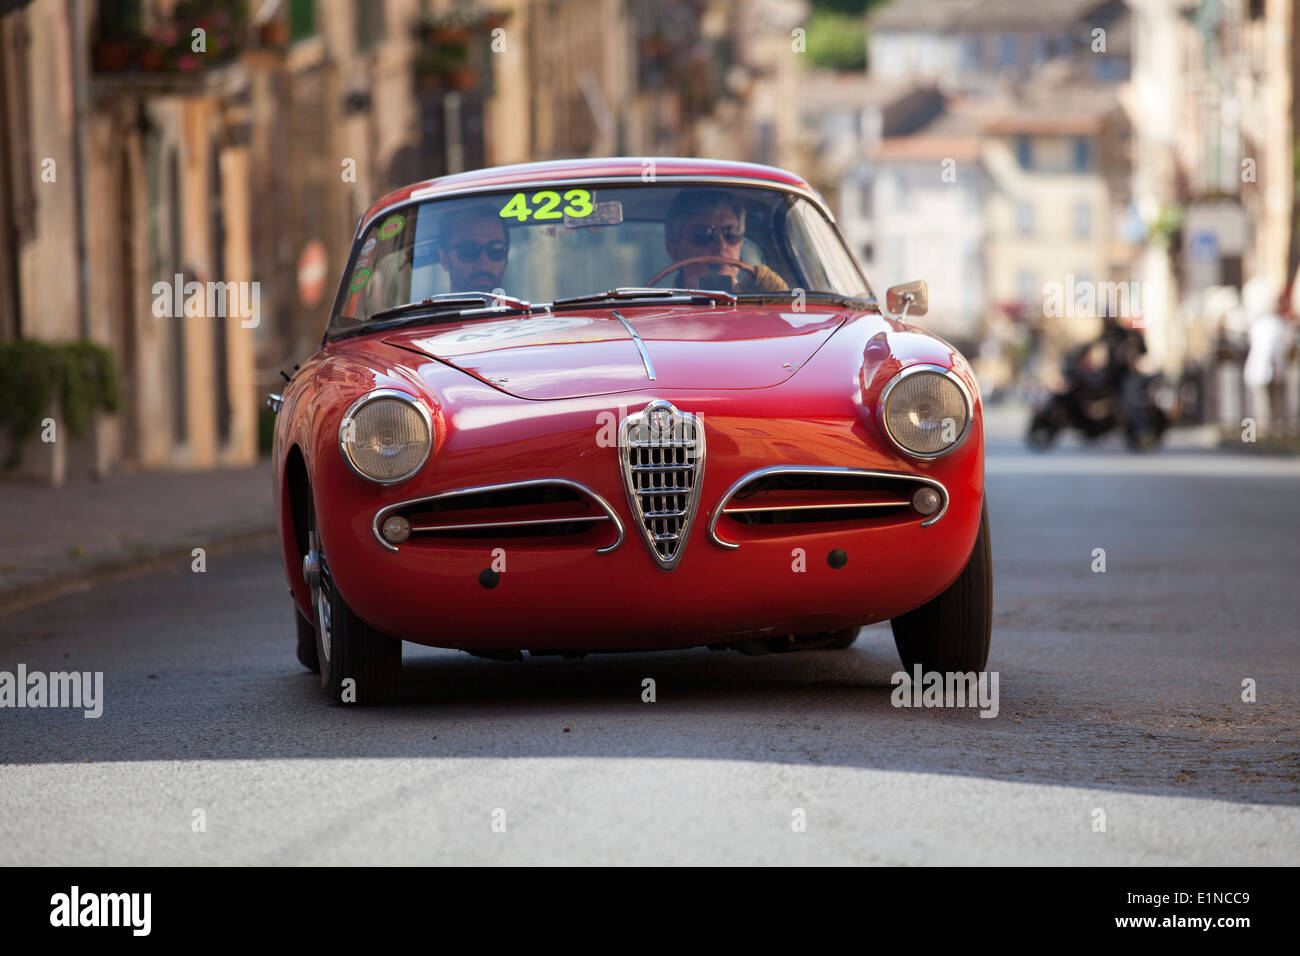 2014 mille miglia classic car rally in Italy. A 1956 red Alfa Romeo 1900 Super Sprint Touring is driven up hill in Ronciglione. - Stock Image